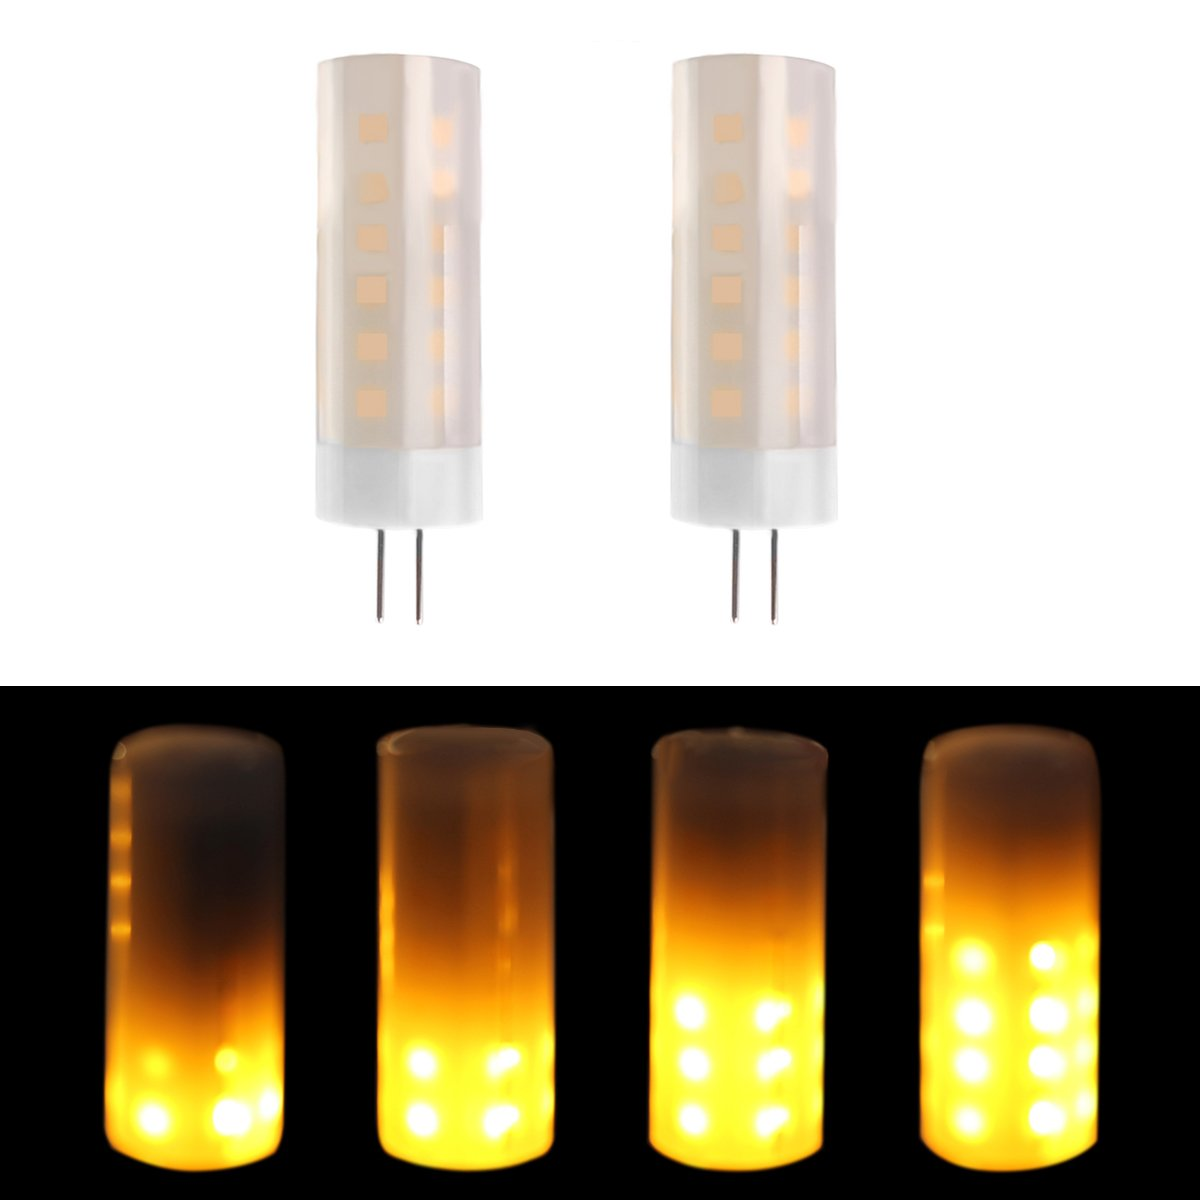 LAKES flame bulb G4 base 1700K True Fire Color led bulb Decorative Lamp for Christmas Halloween Festival Party Pack of 2